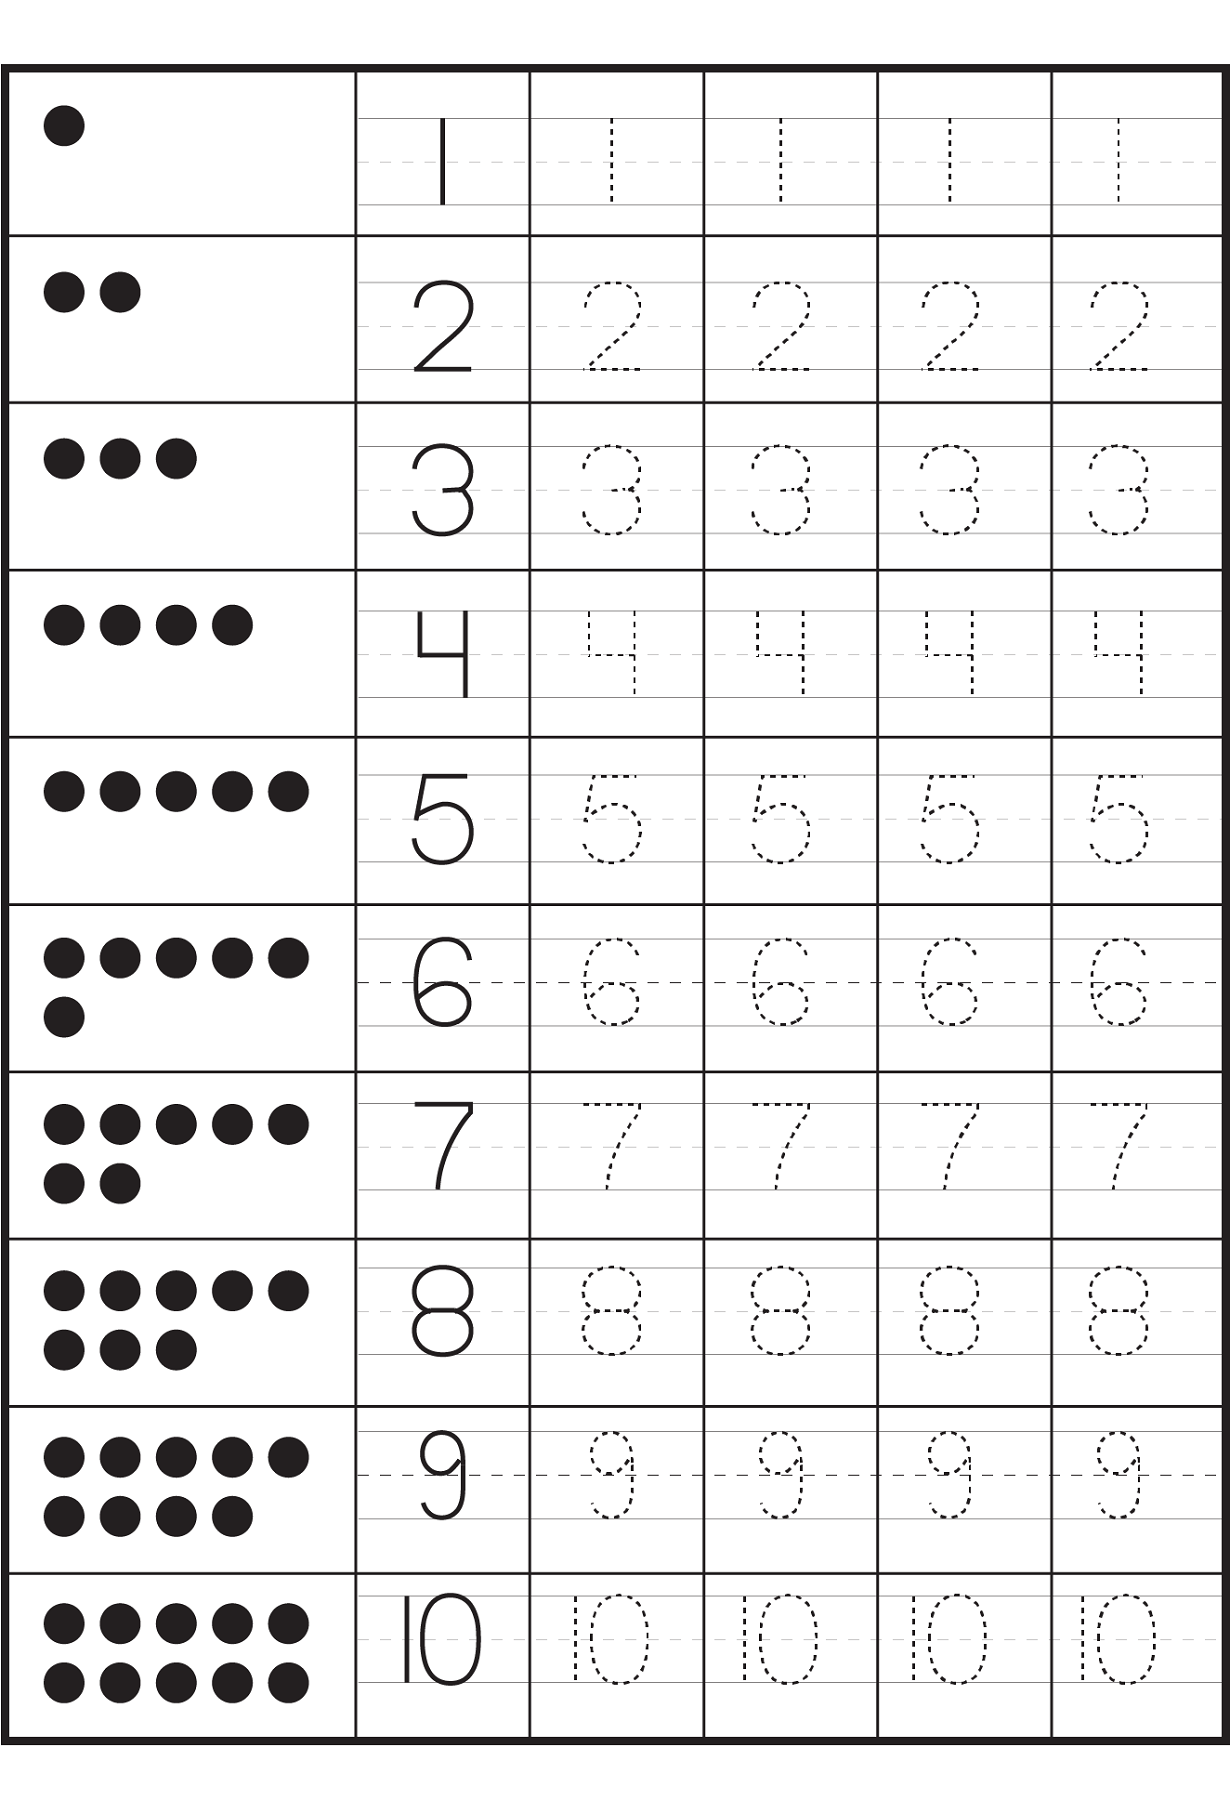 Writing Numbers Worksheet 1 10 Free Worksheets Library – Number Writing Worksheets